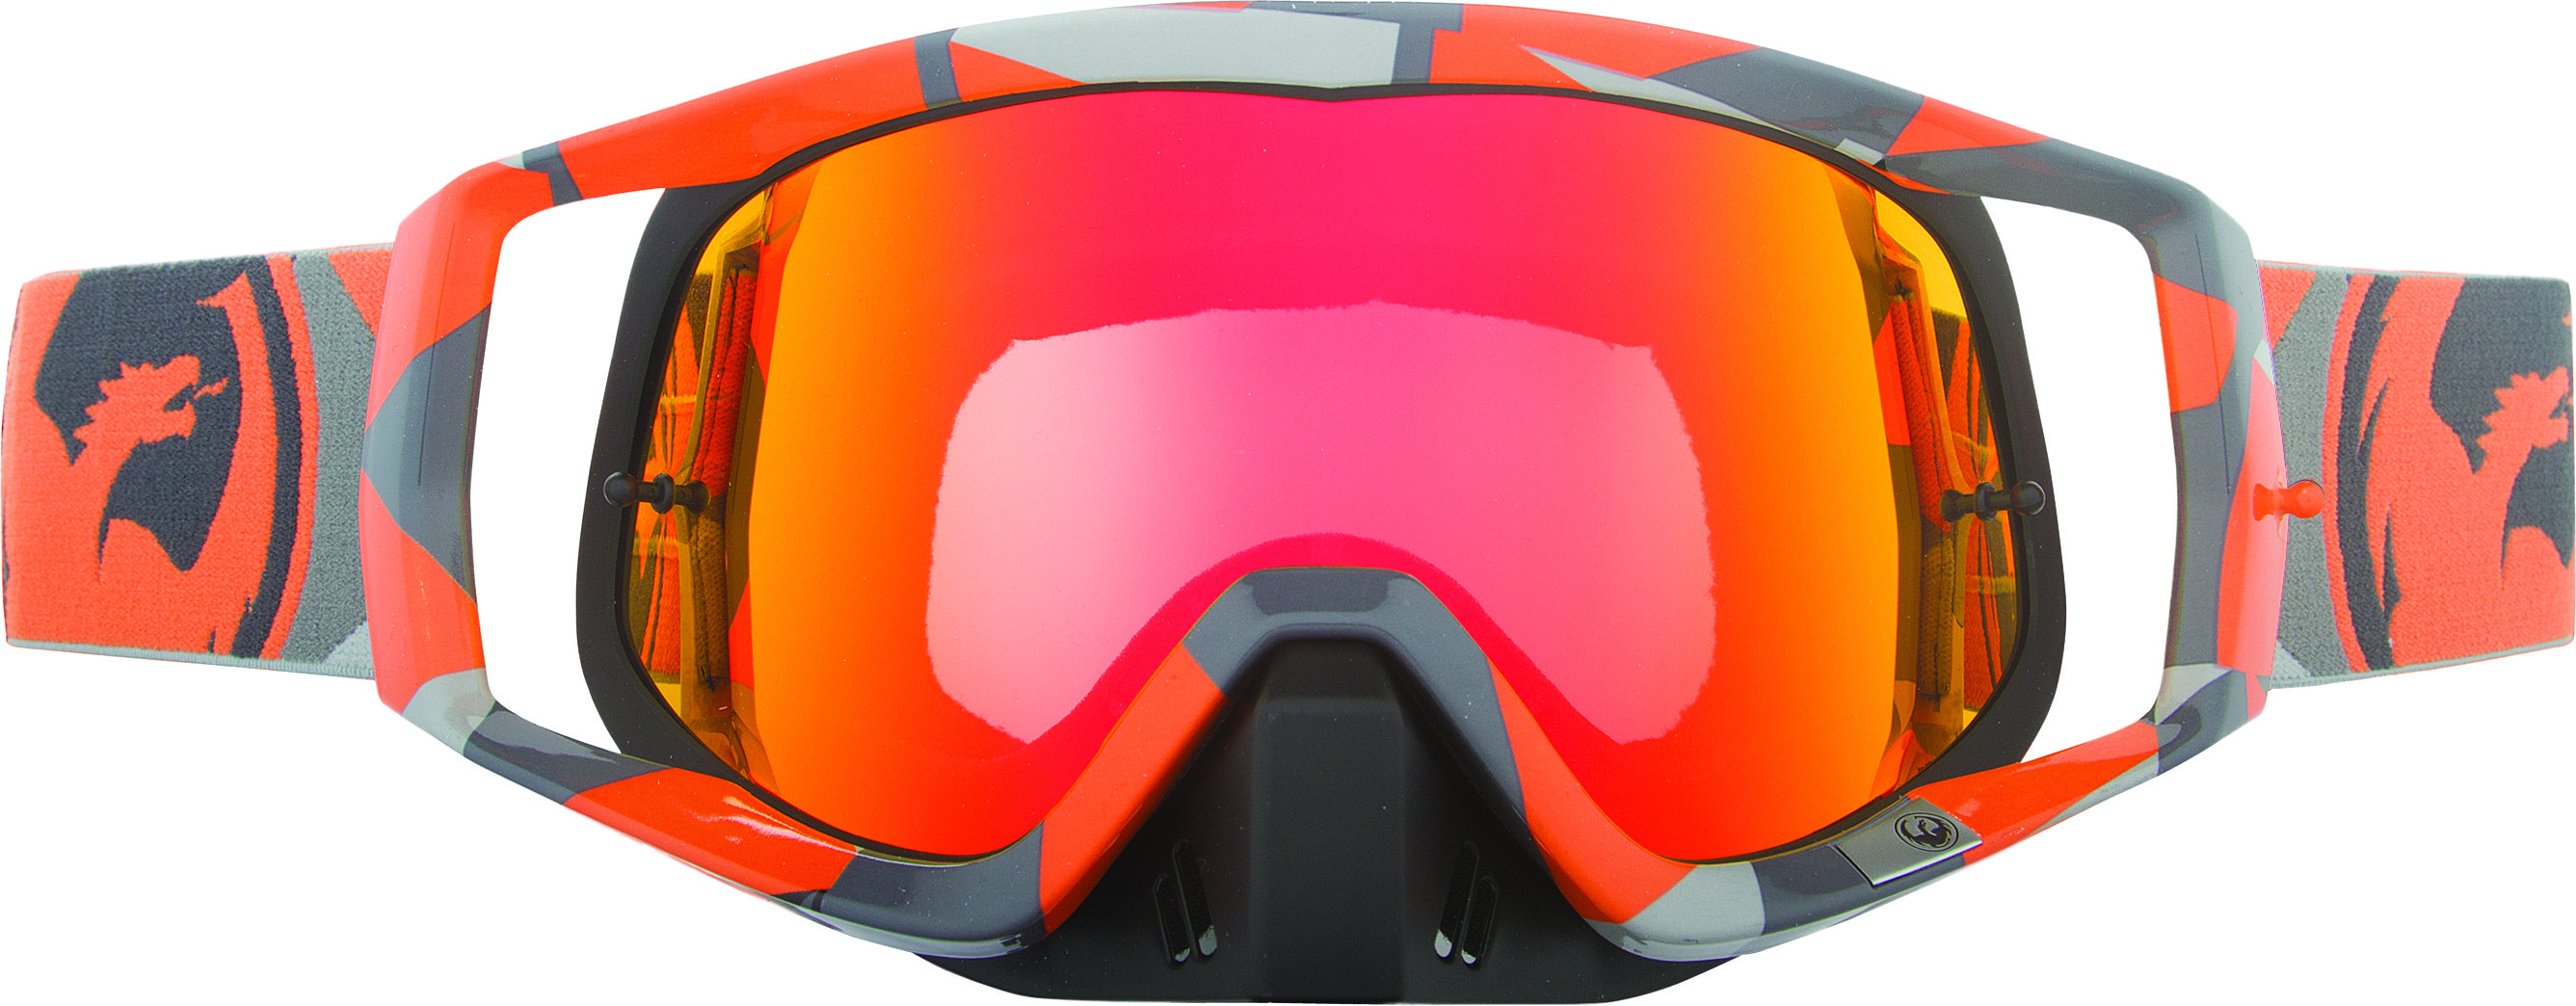 Vendetta Goggles Orange Flair Red Ion W/10 Pk Tearoff